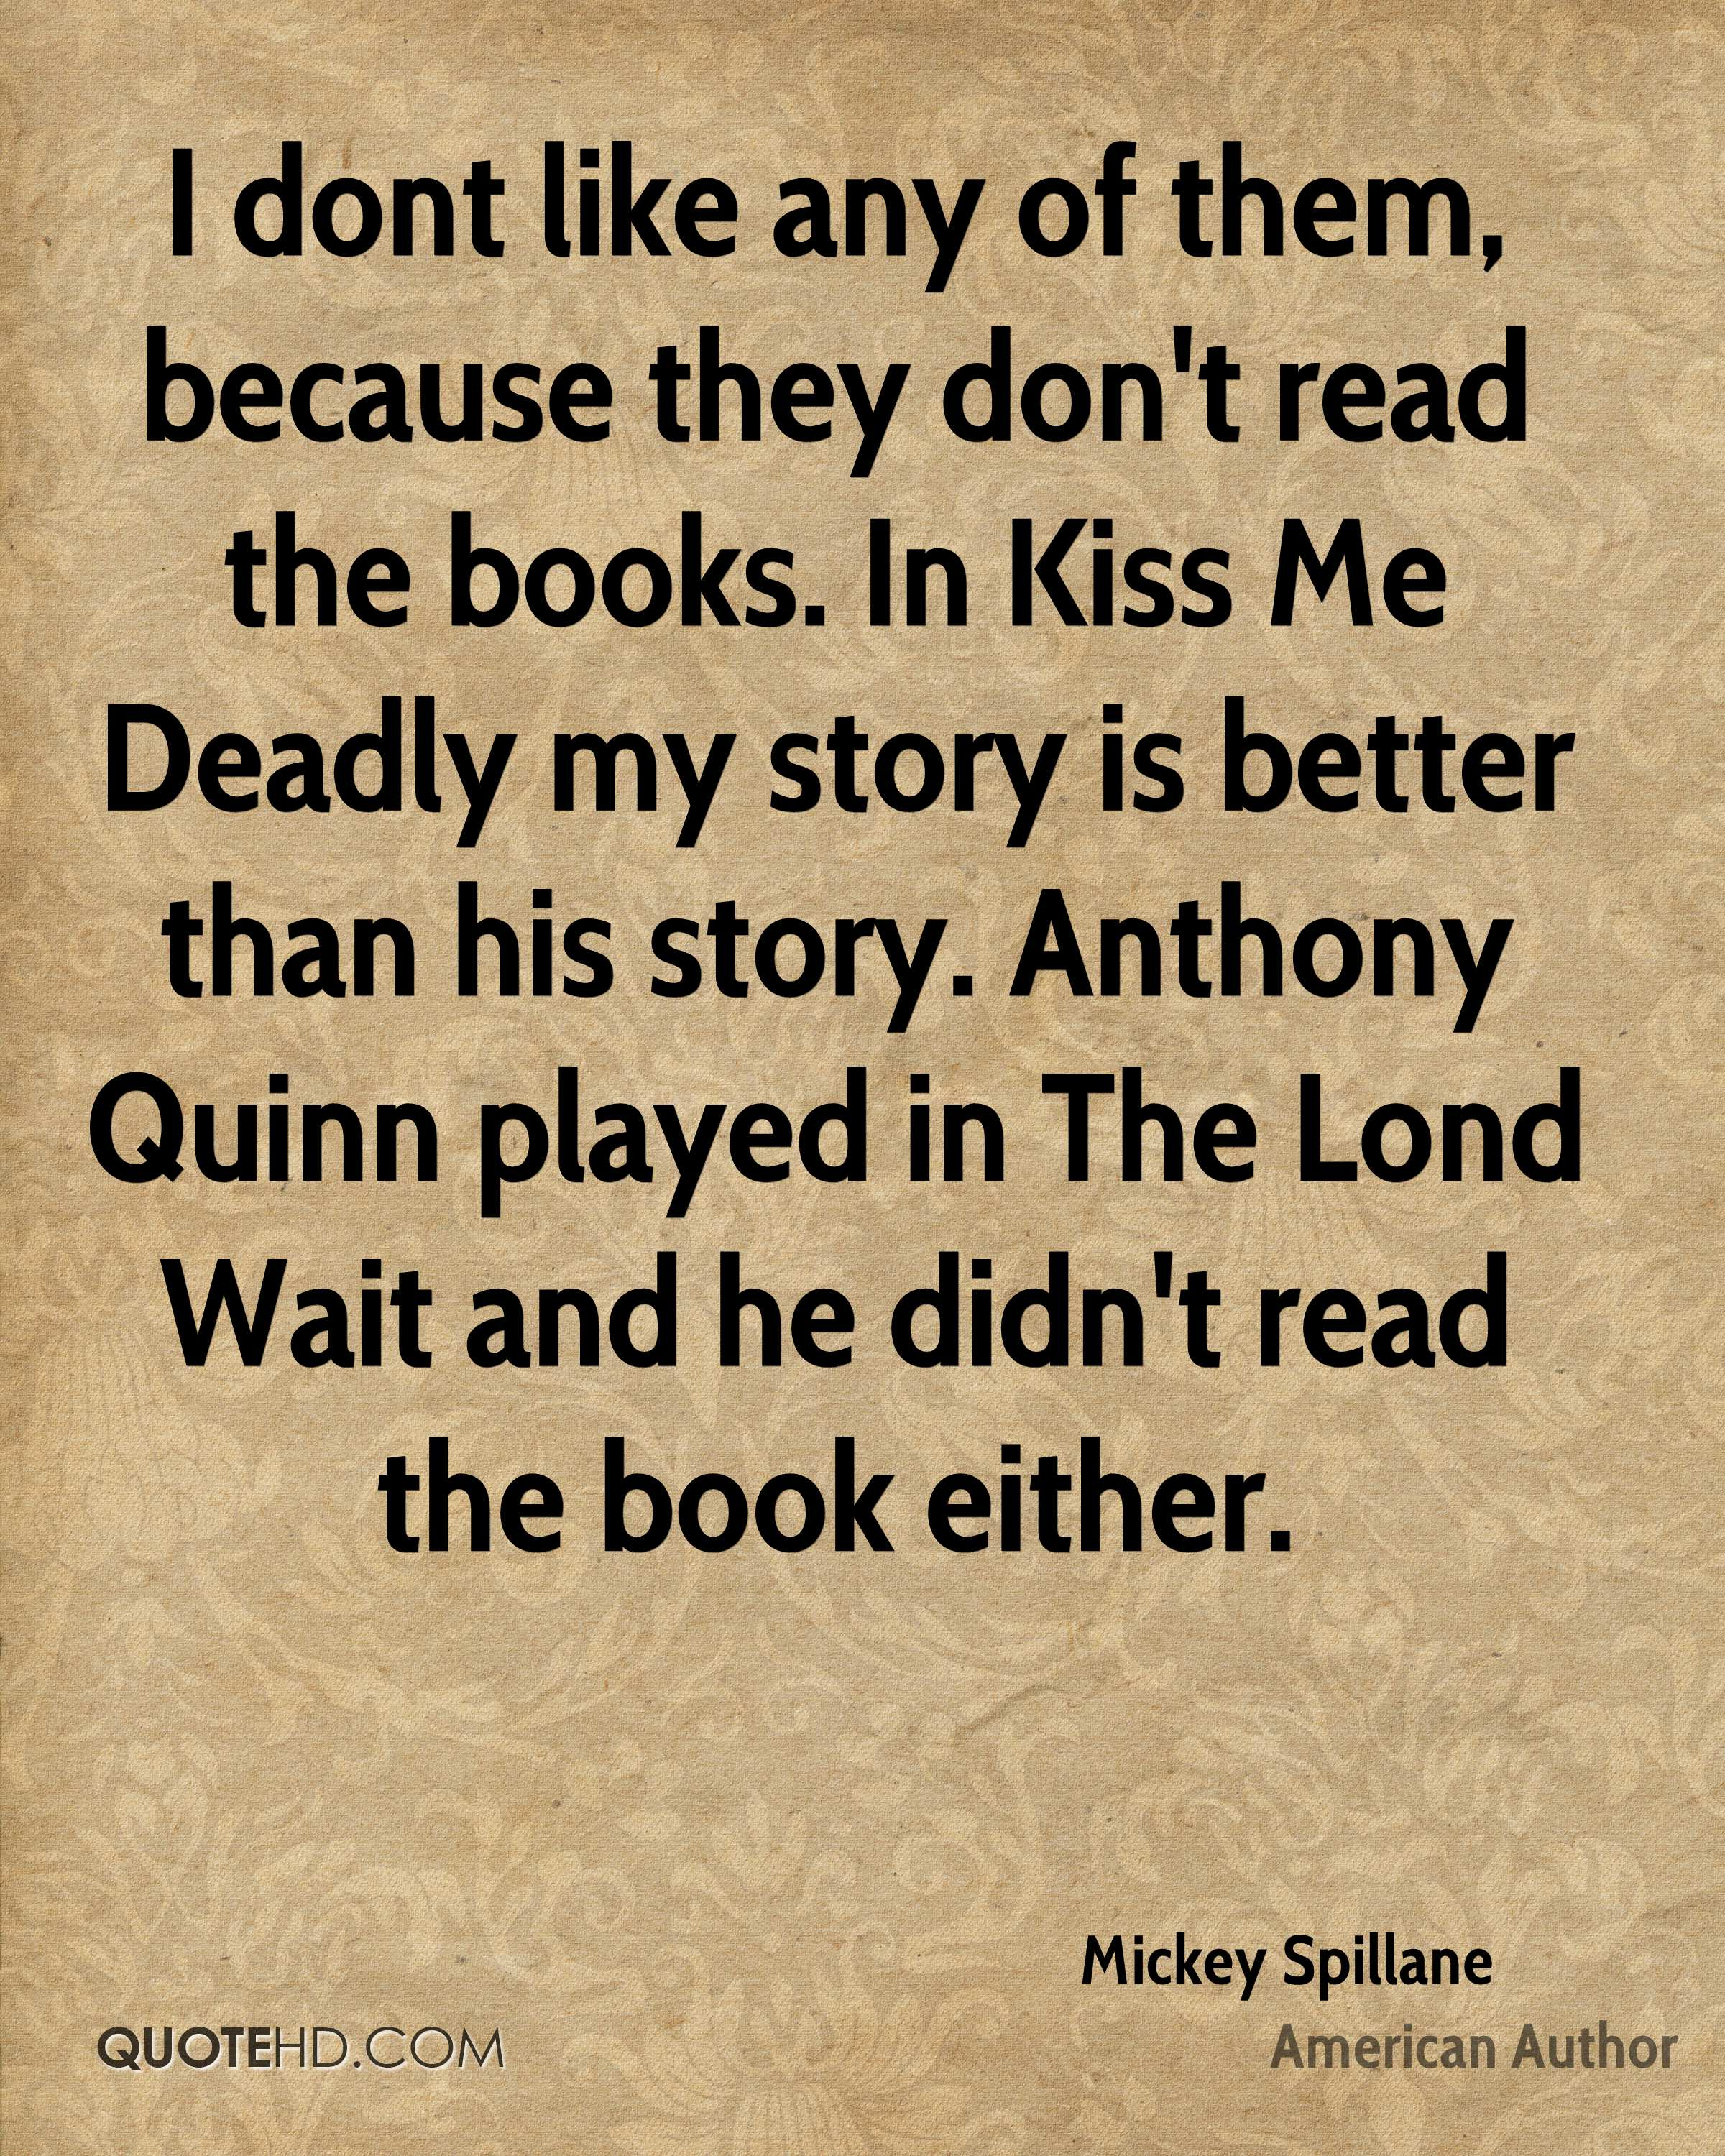 I dont like any of them, because they don't read the books. In Kiss Me Deadly my story is better than his story. Anthony Quinn played in The Lond Wait and he didn't read the book either.